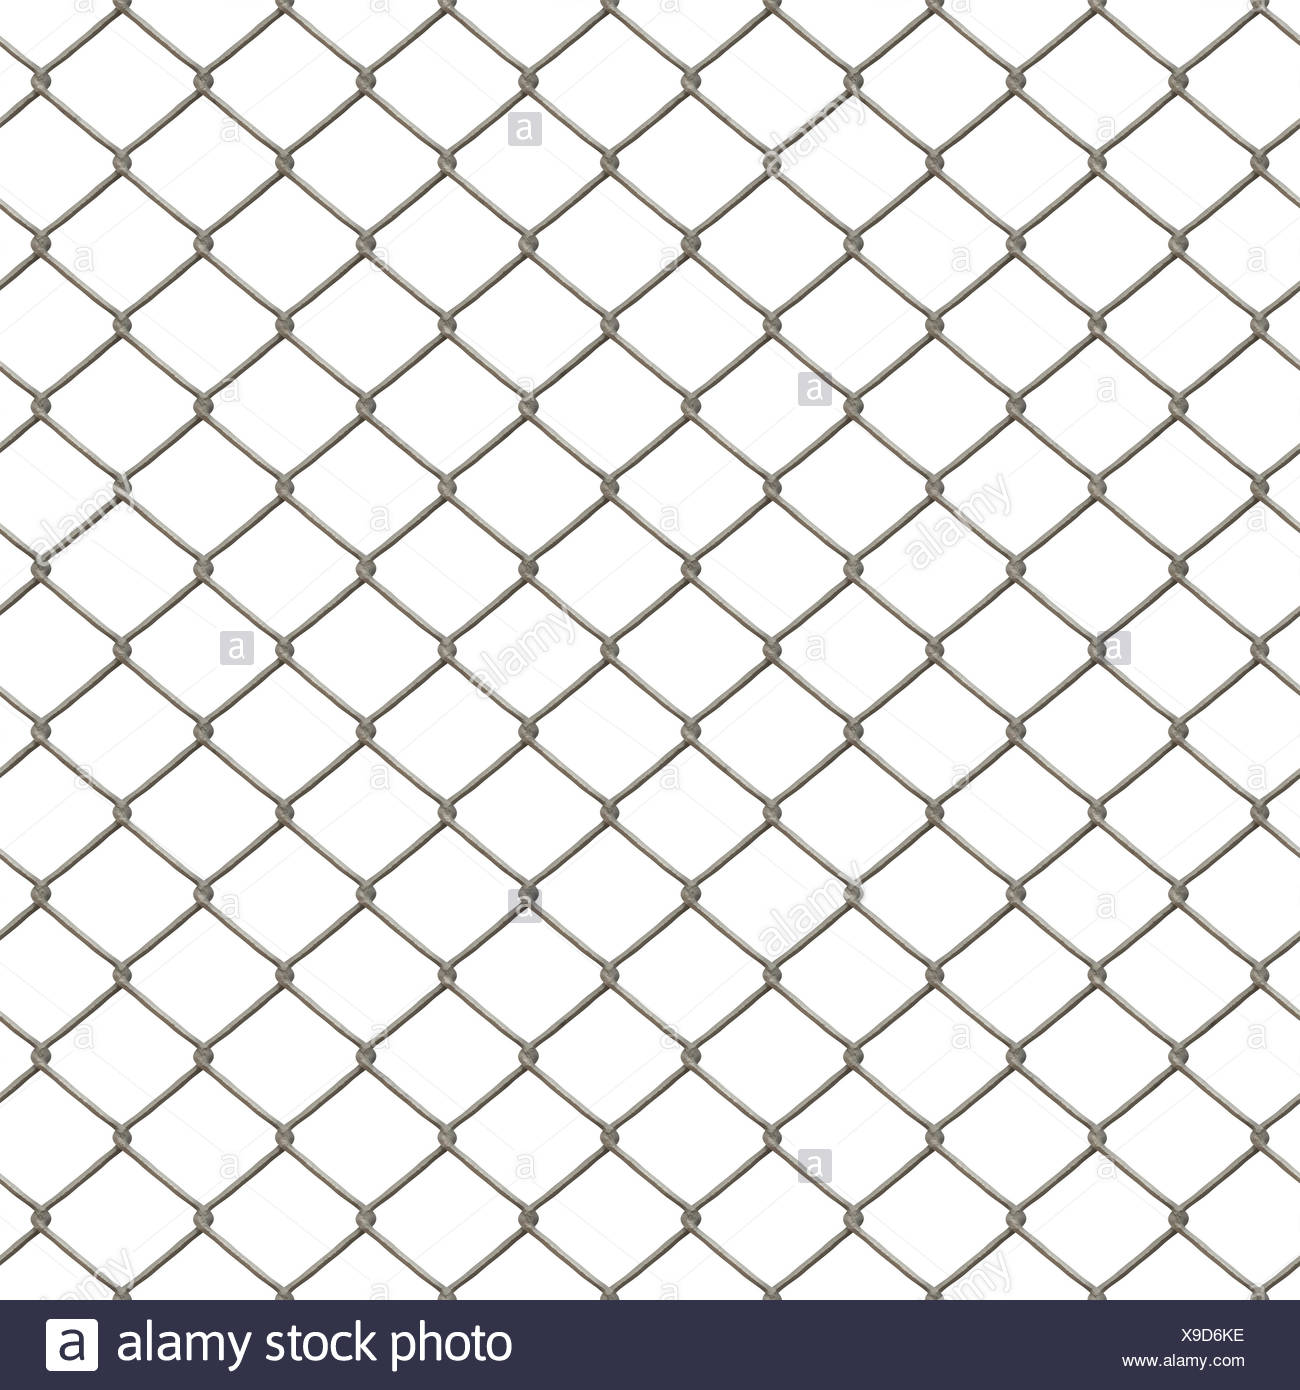 chain link fence texture. Isolated Strong Chain - Stock Image Link Fence Texture H